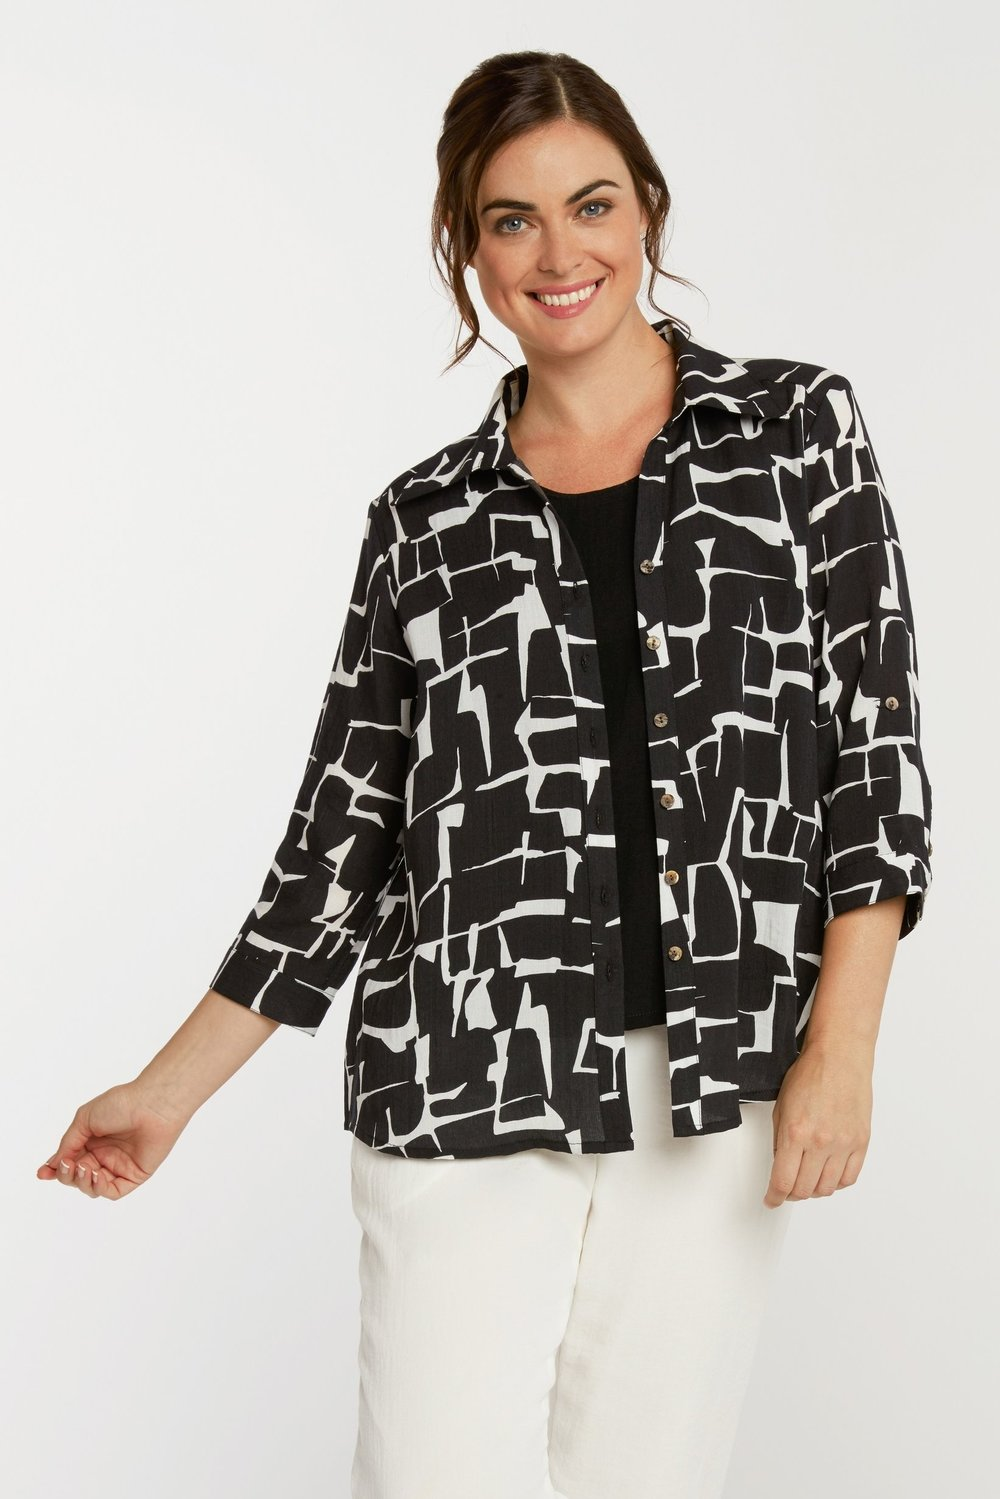 AA126 - Tuxedo Tail Blouse    CL9238 - Crackle